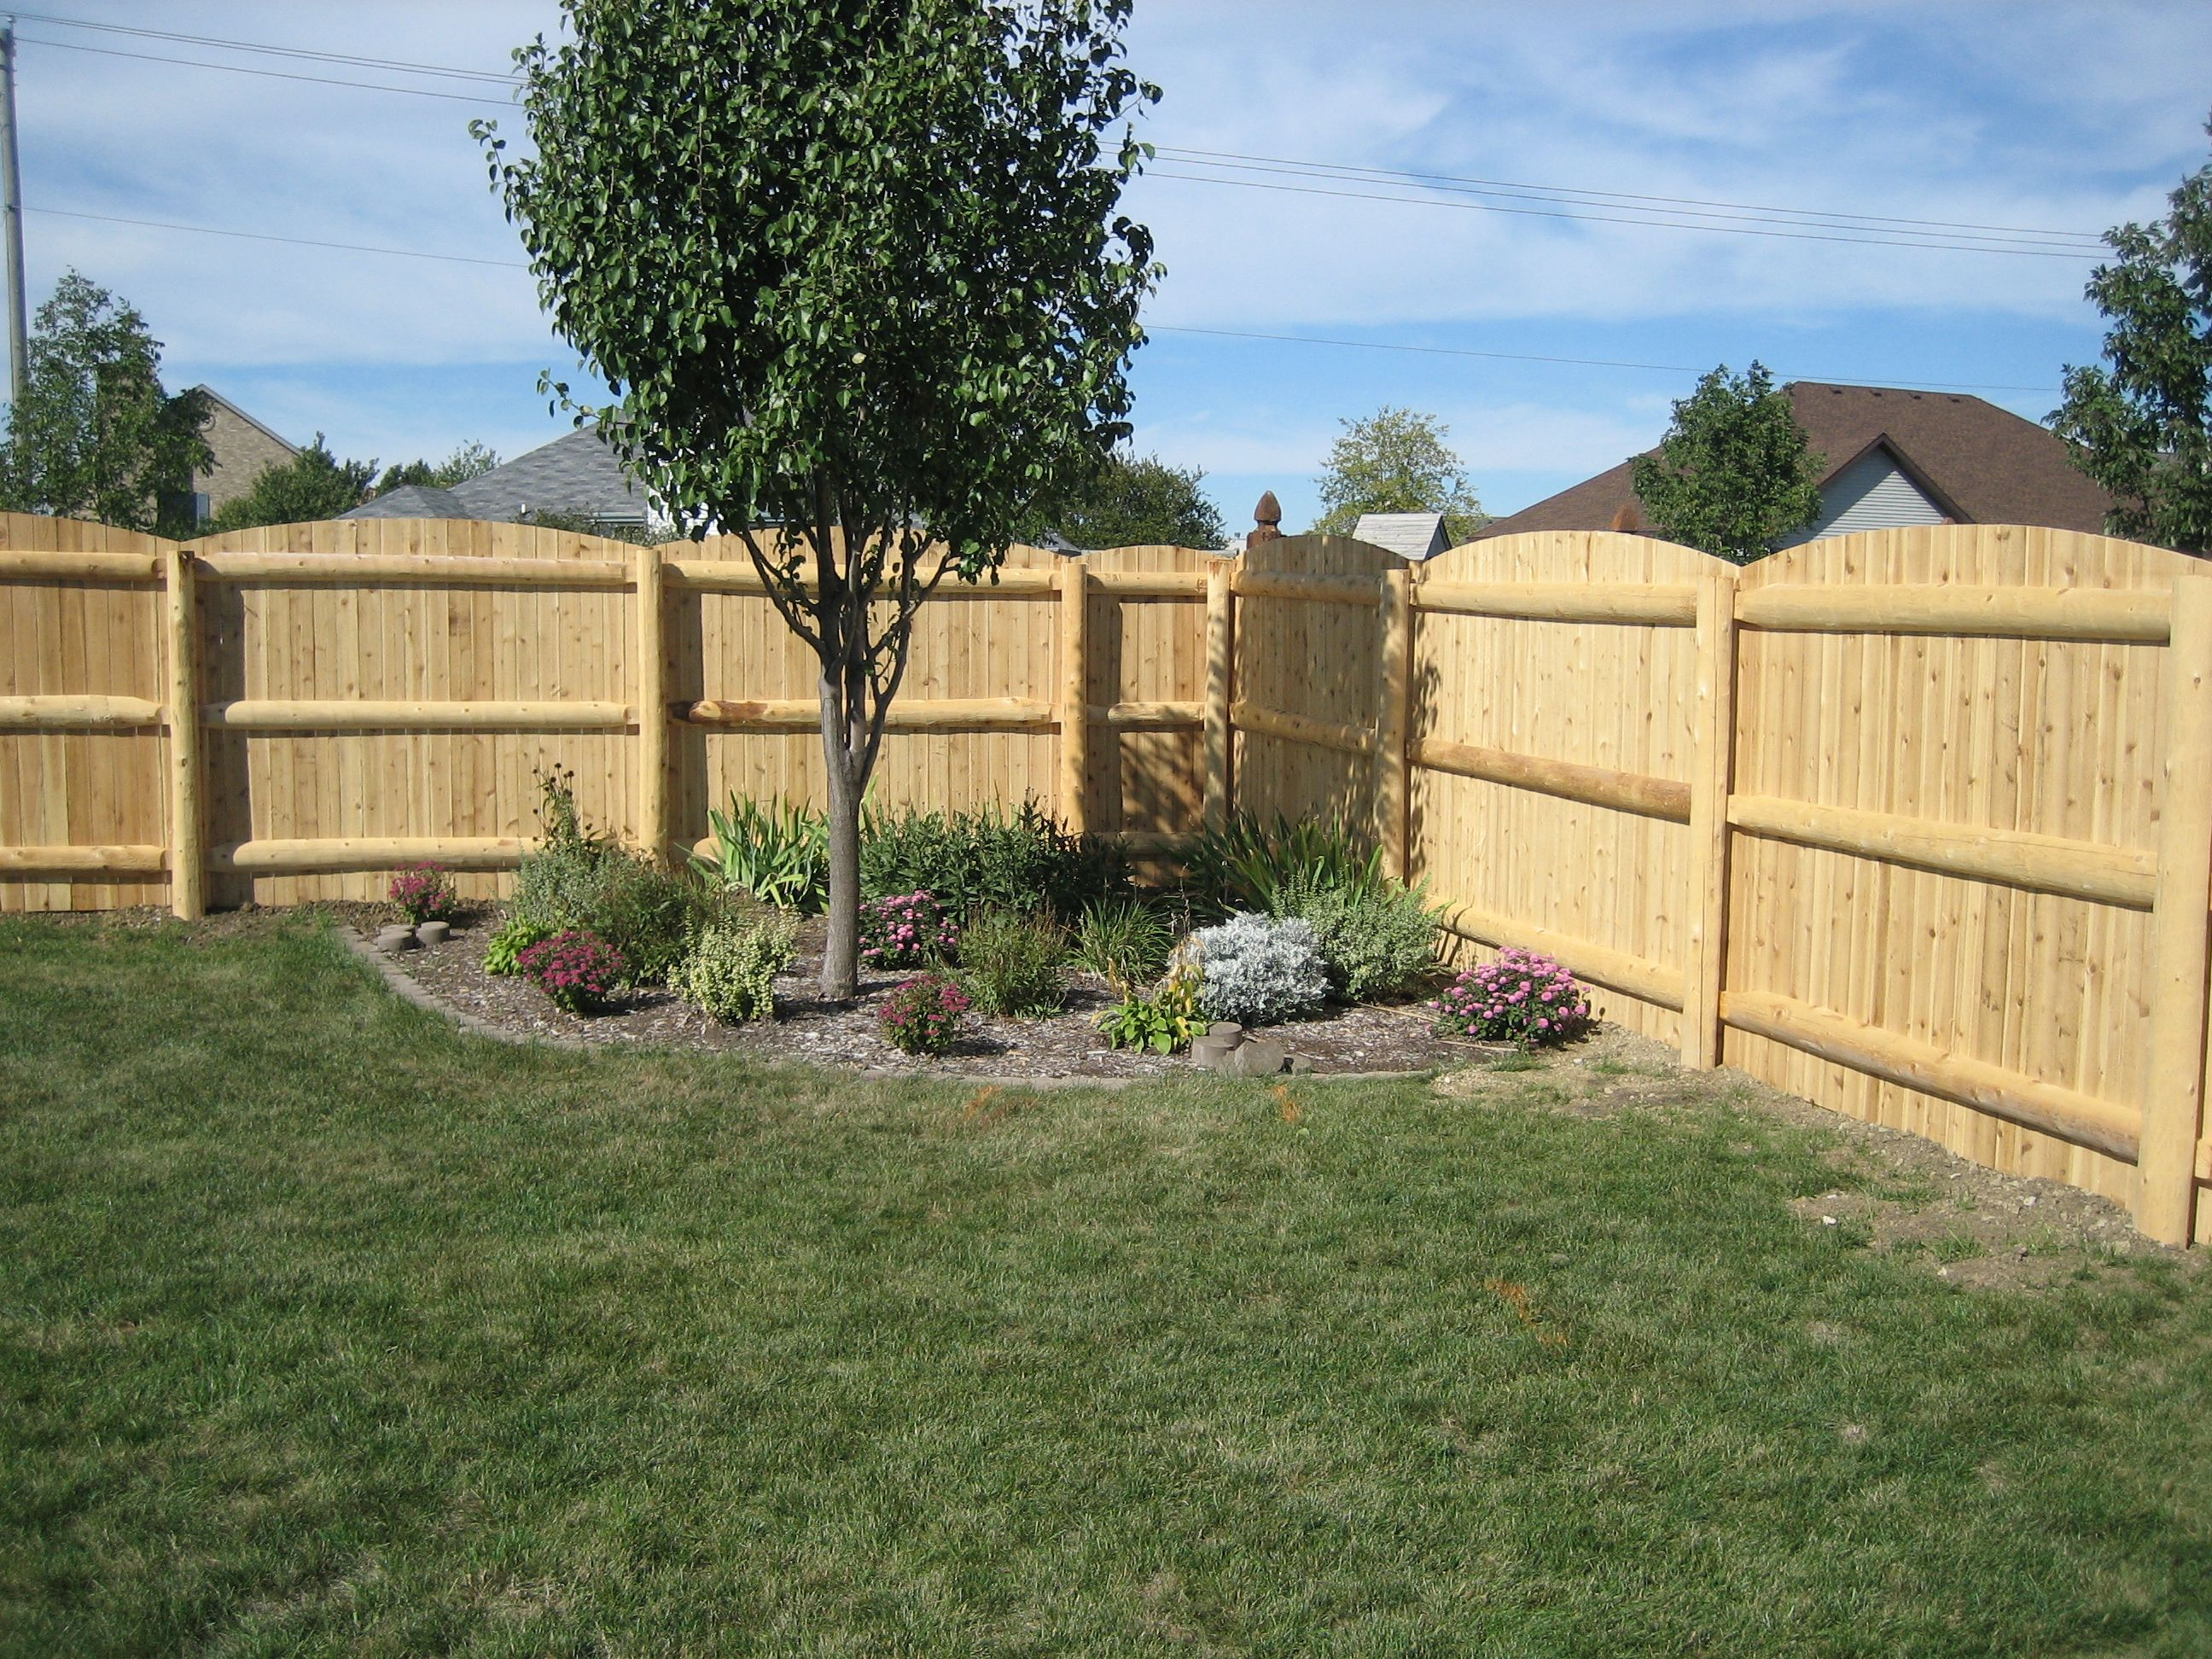 Rustic Privacy Fence With Round Post And 1 2 Log Framing Cedar Fence Posts Wood Fence Post Lawn Decor